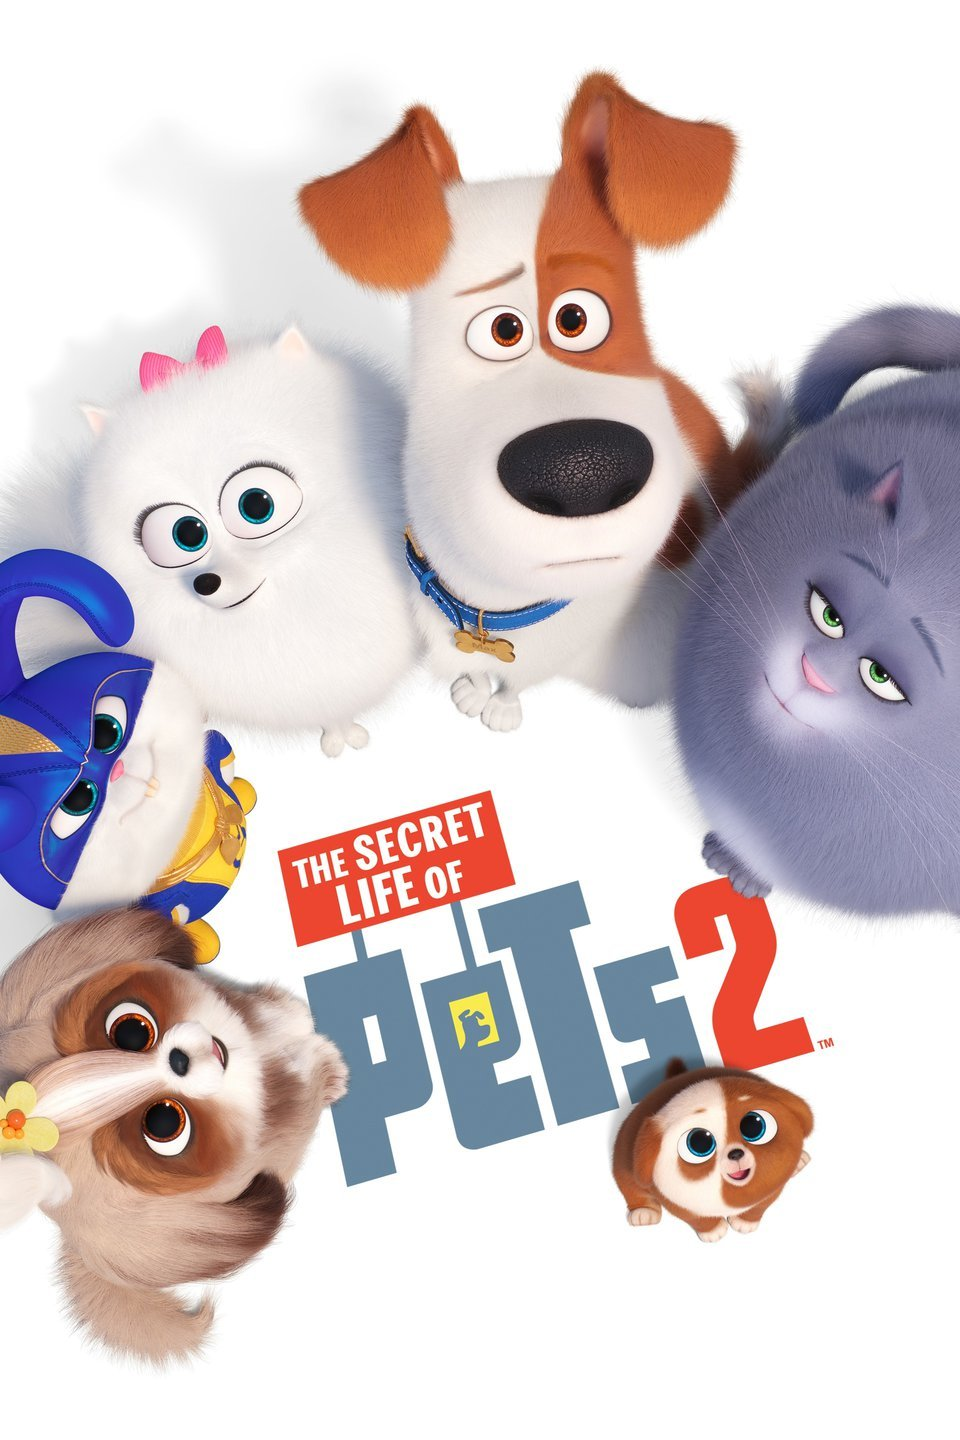 Family Movie: The Secret Life of Pets 2